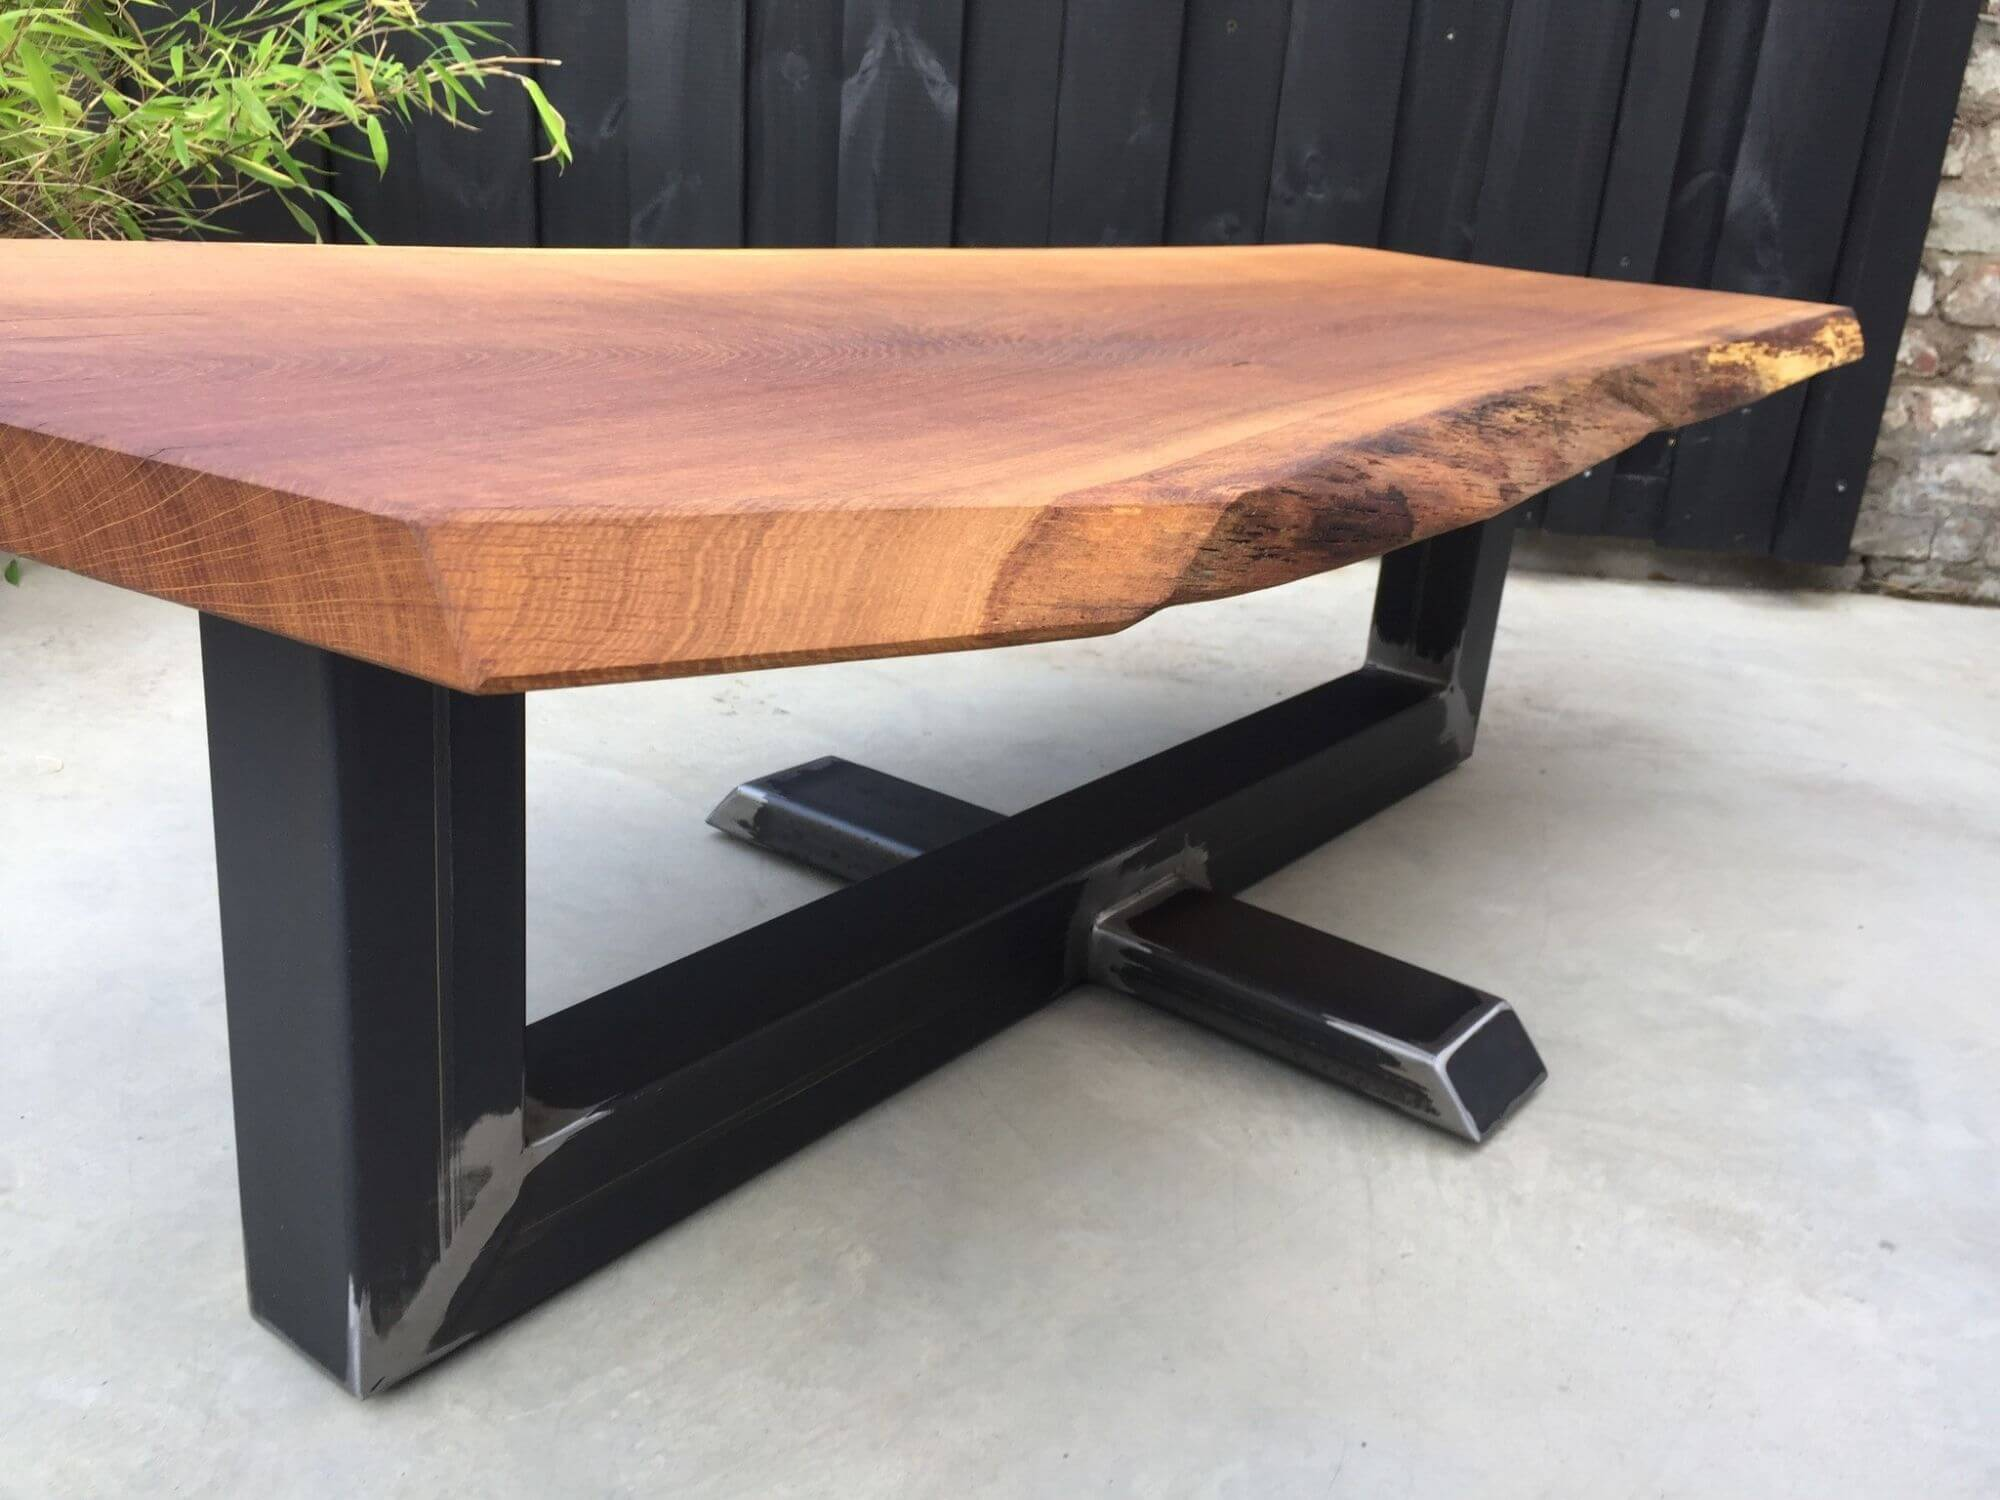 Unique live edge wood table finished with Rubio Monocoat.